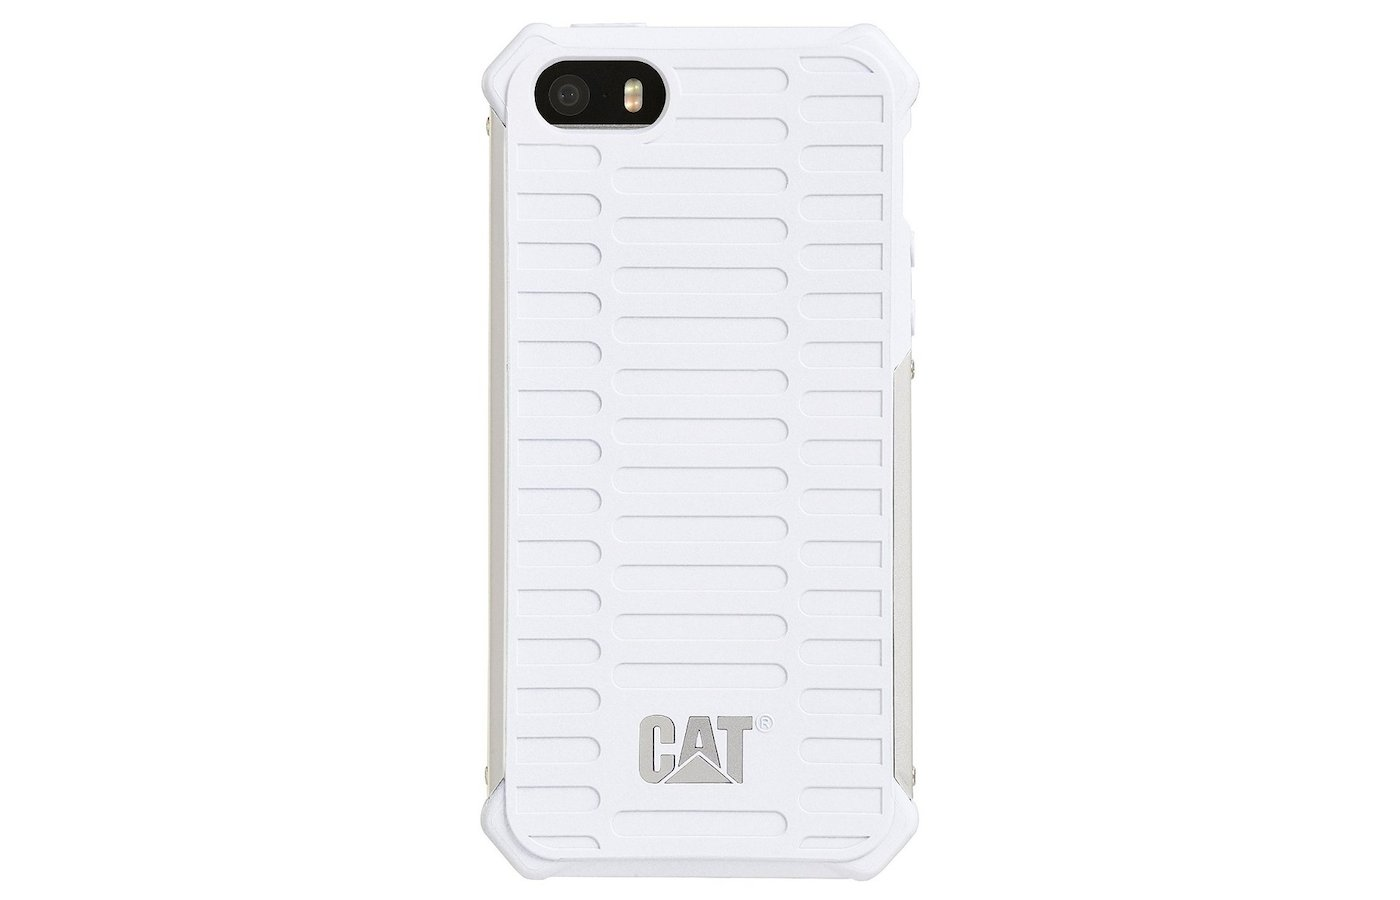 Чехол Caterpillar для iPhone 6/6S Urban white (CUCA-WHSI-I6S)